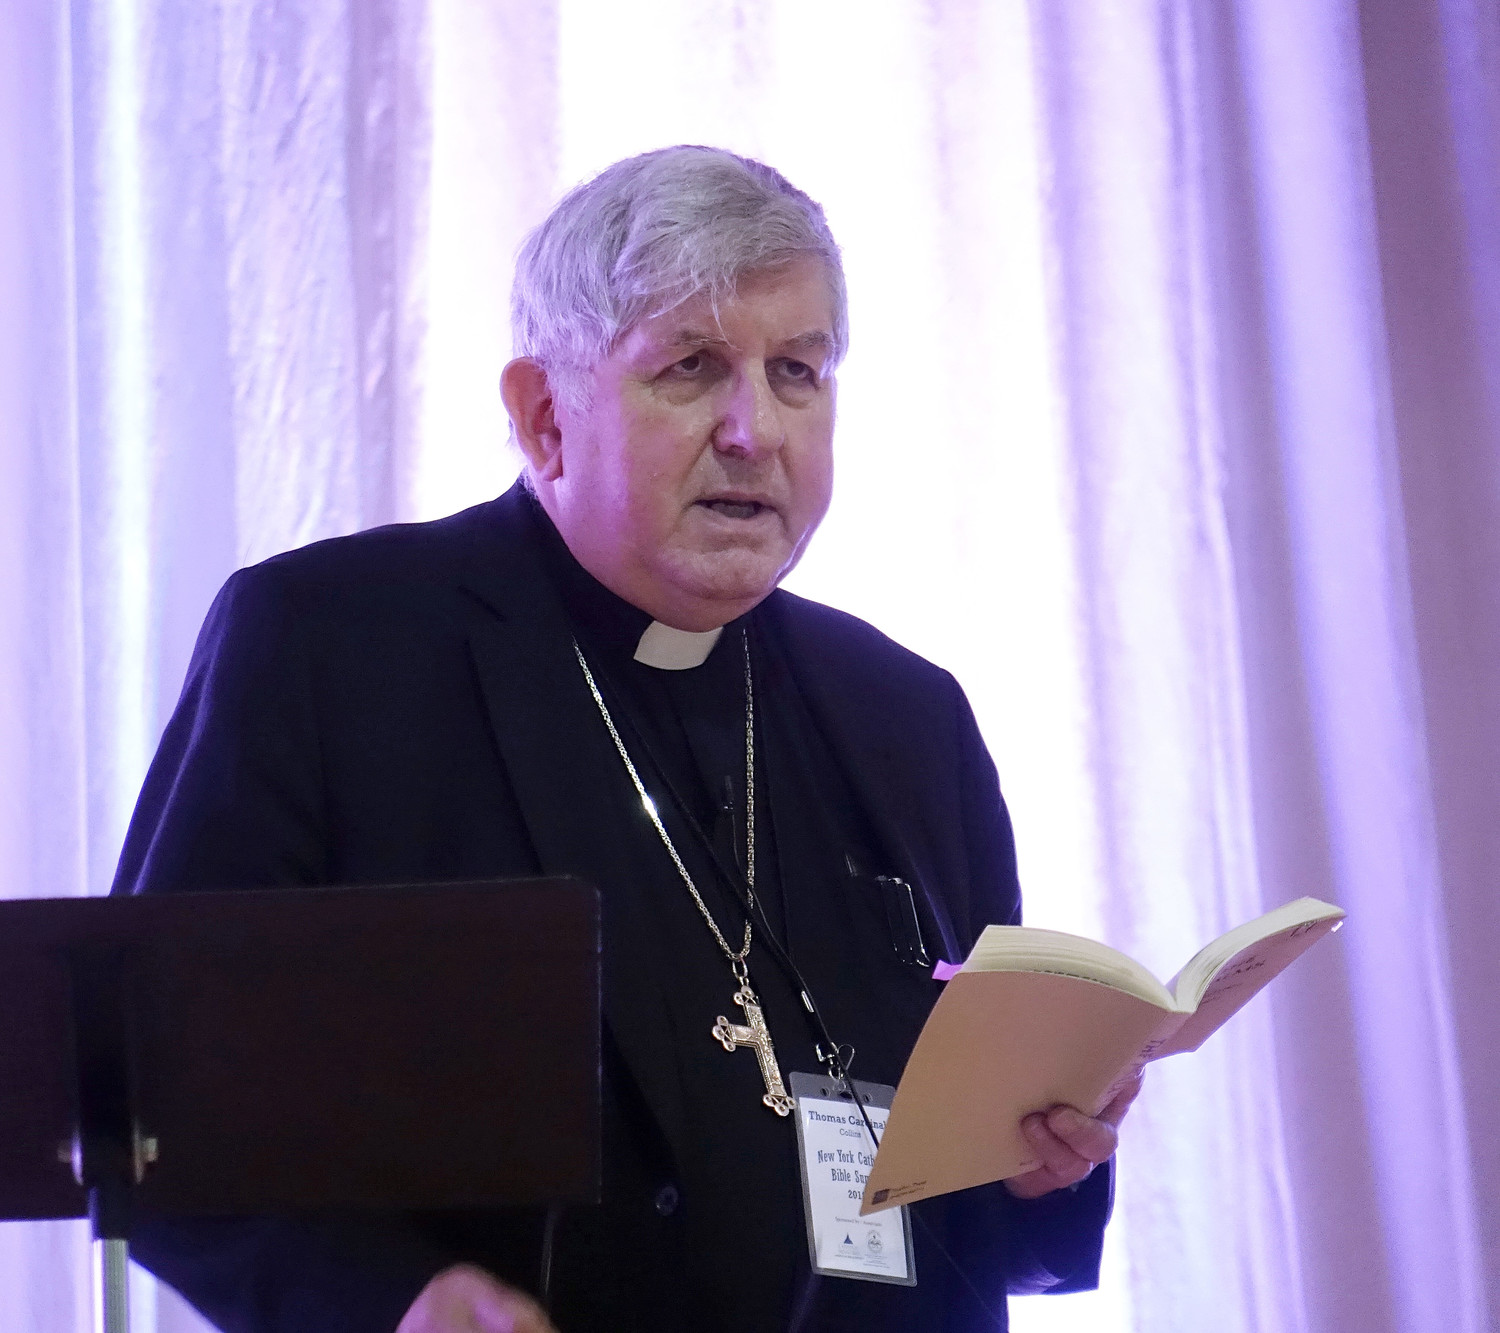 Cardinal Thomas Collins of Toronto, top right, delivered the Bible summit's keynote address in English.